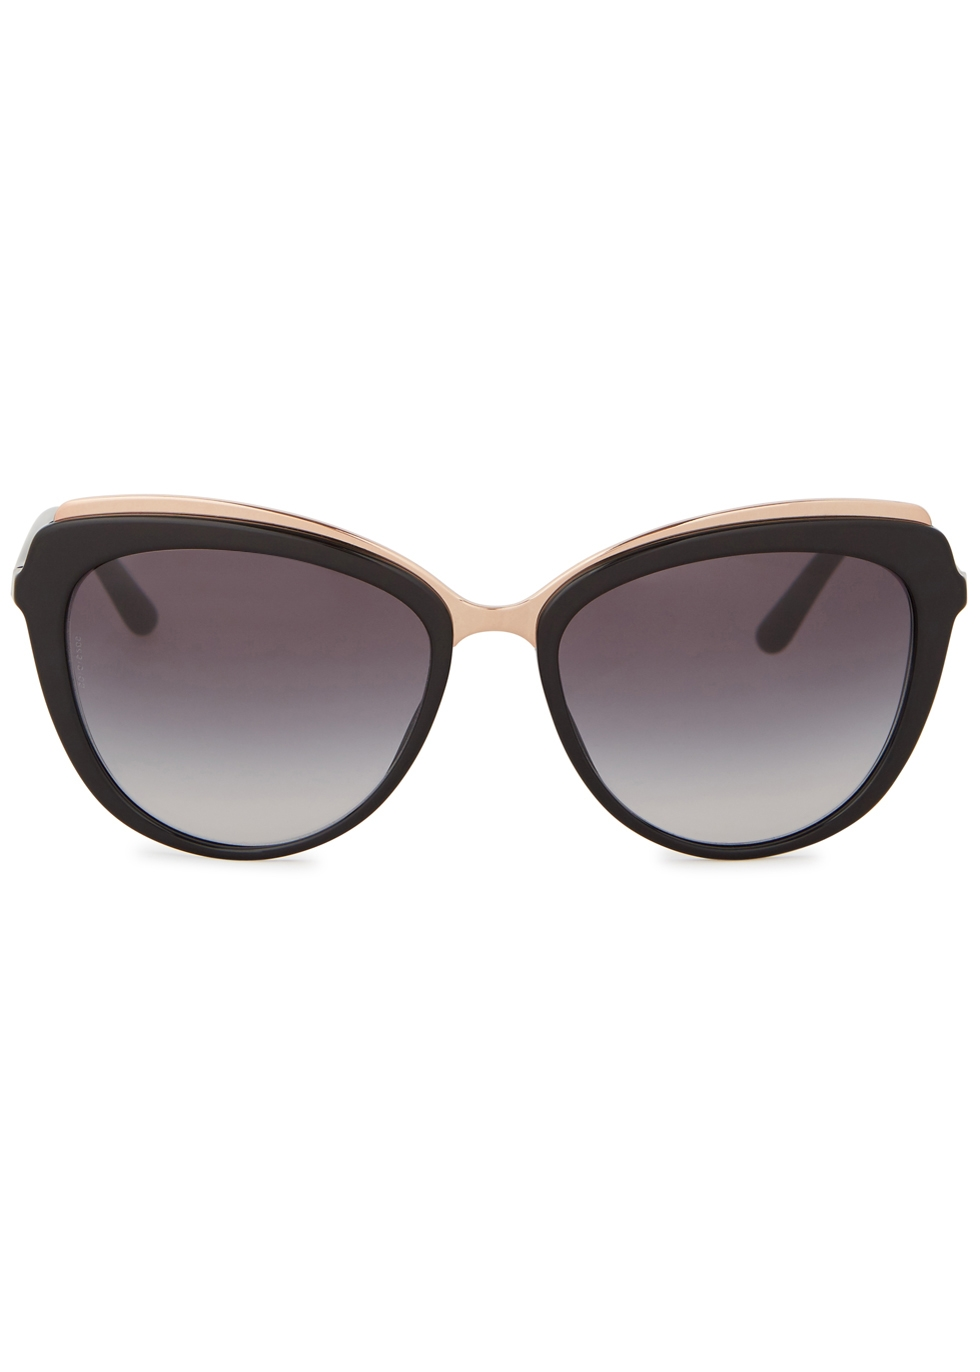 Black cat-eye sunglasses - Dolce & Gabbana